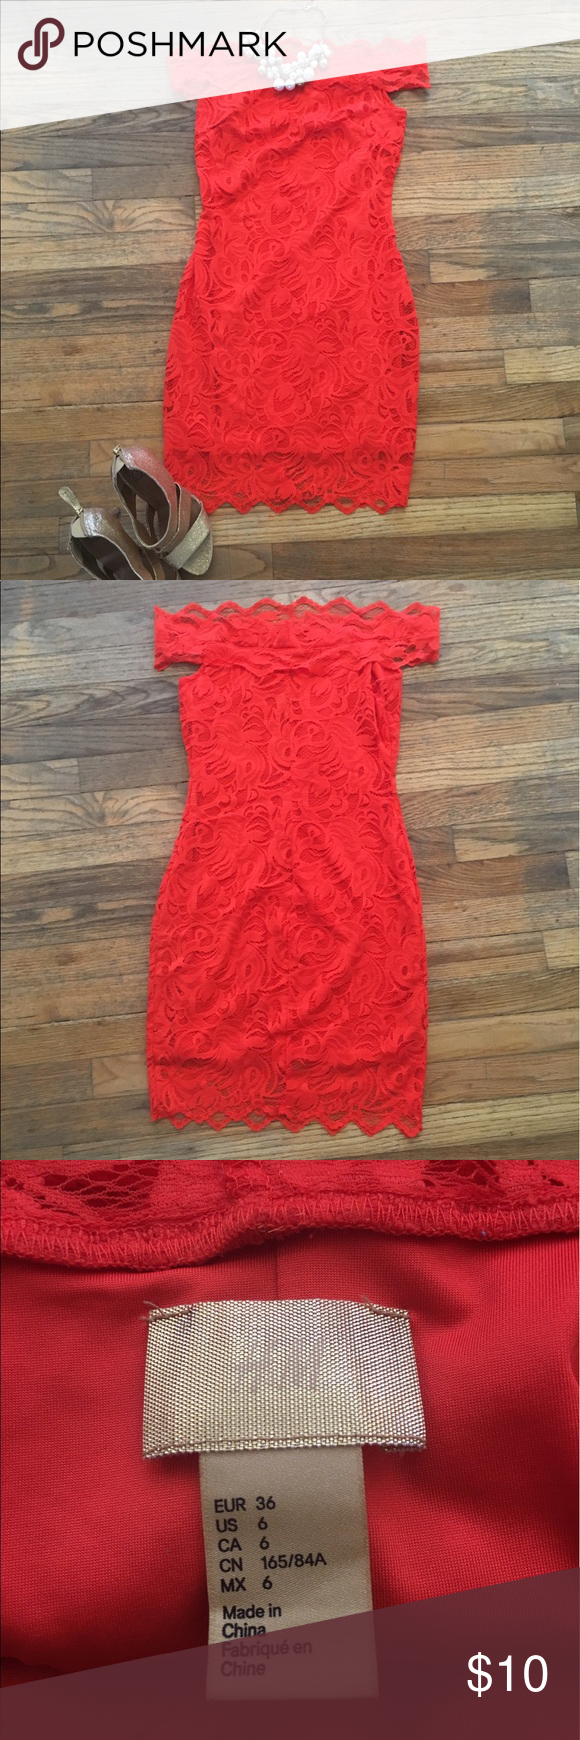 Off the shoulder orange lace cocktail dress Orange you glad you found this dress?! The bodycon lace is figure flattering and the off the shoulder, Bardot style cut is fun and on trend. The orange color is electric and sure to turn some heads! H&M Dresses Mini